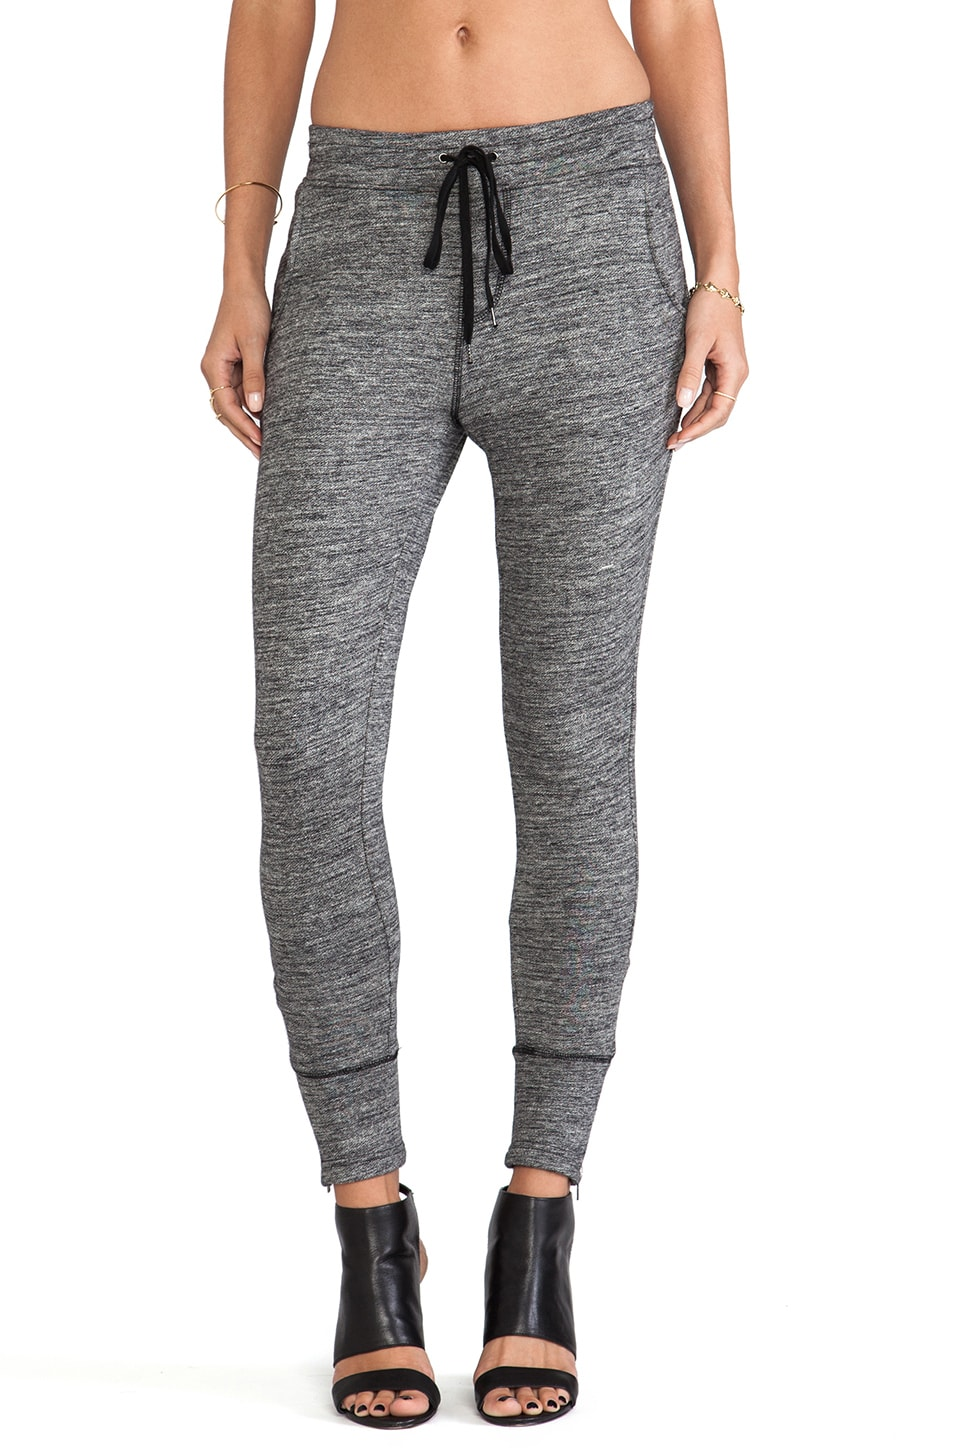 Funktional Lounge Pant in Graphite